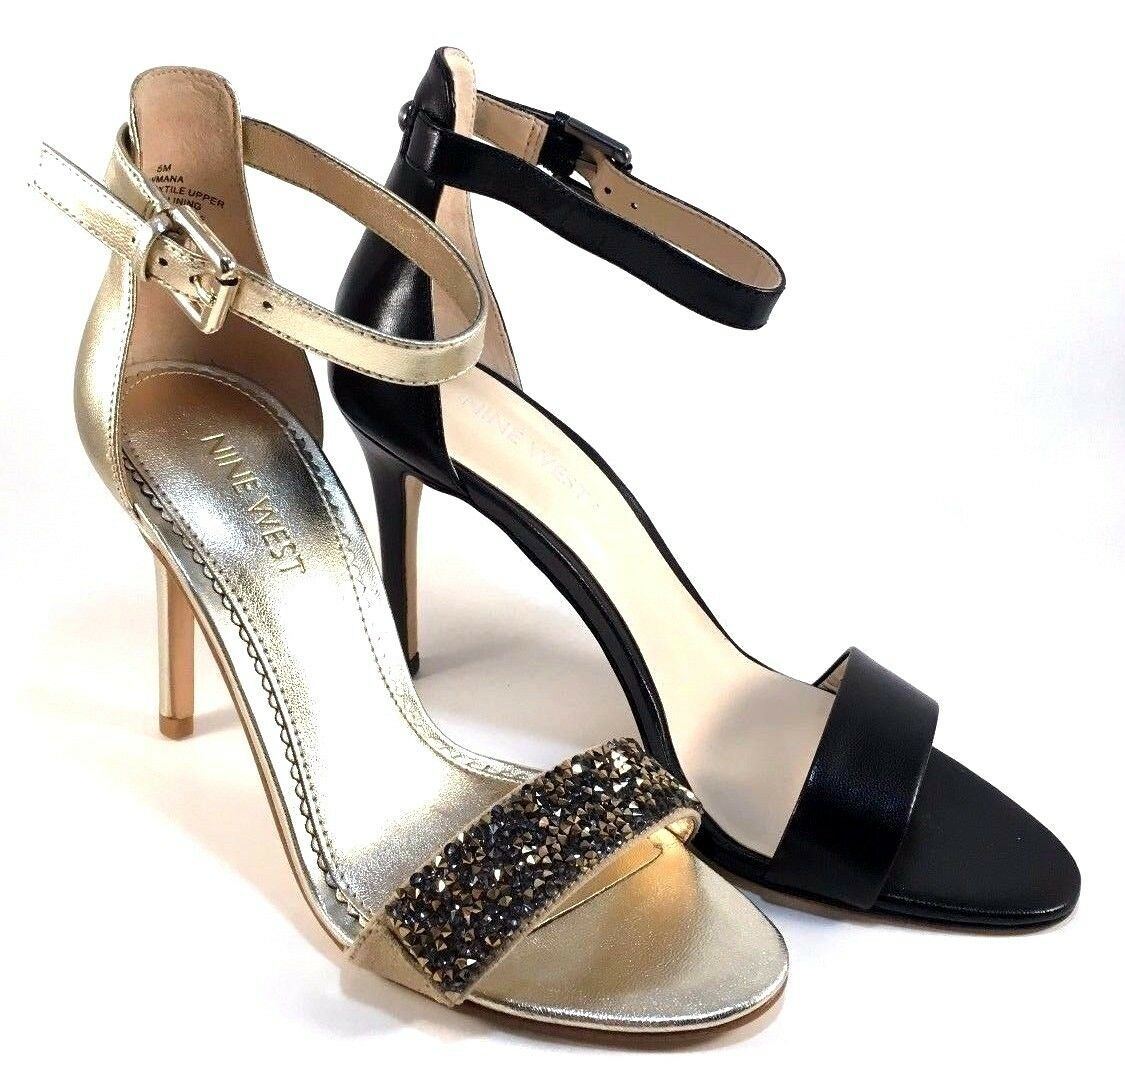 Nine West Mana Leather High Heel Dressy Ankle Strap Sandals Choose Sz/Color